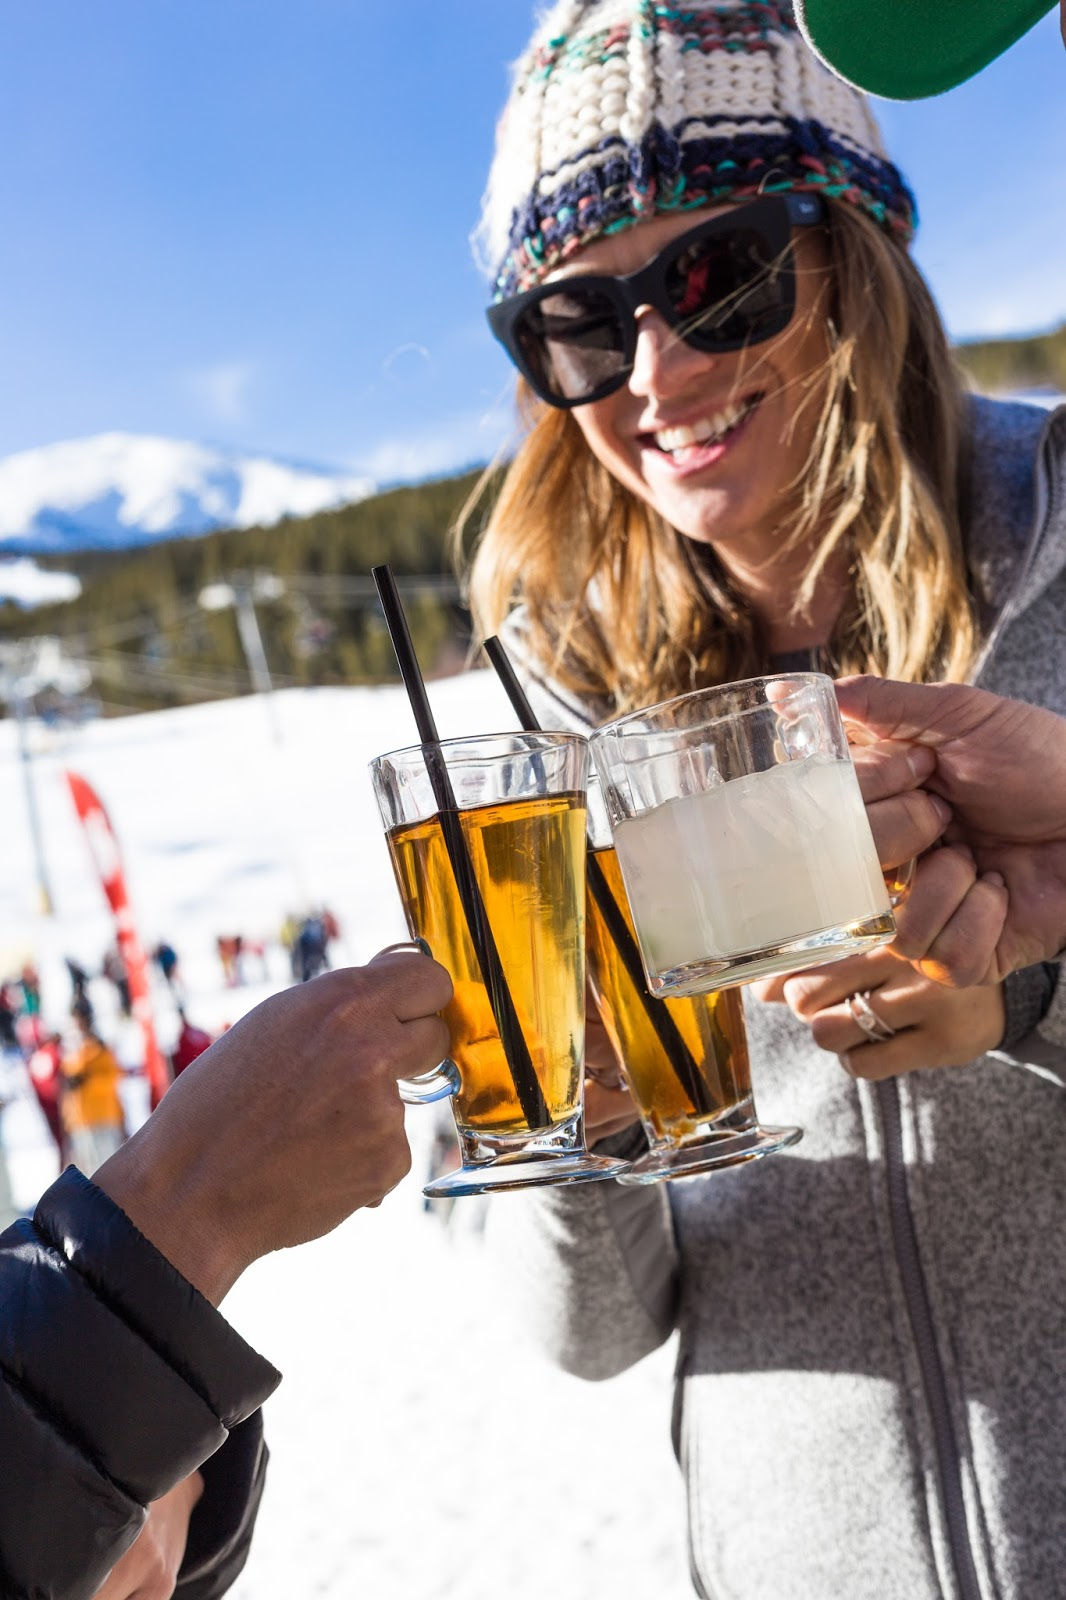 Things To Do In Breckenridge With Supergoop by popular Colorado blogger Eat Pray Wear Love